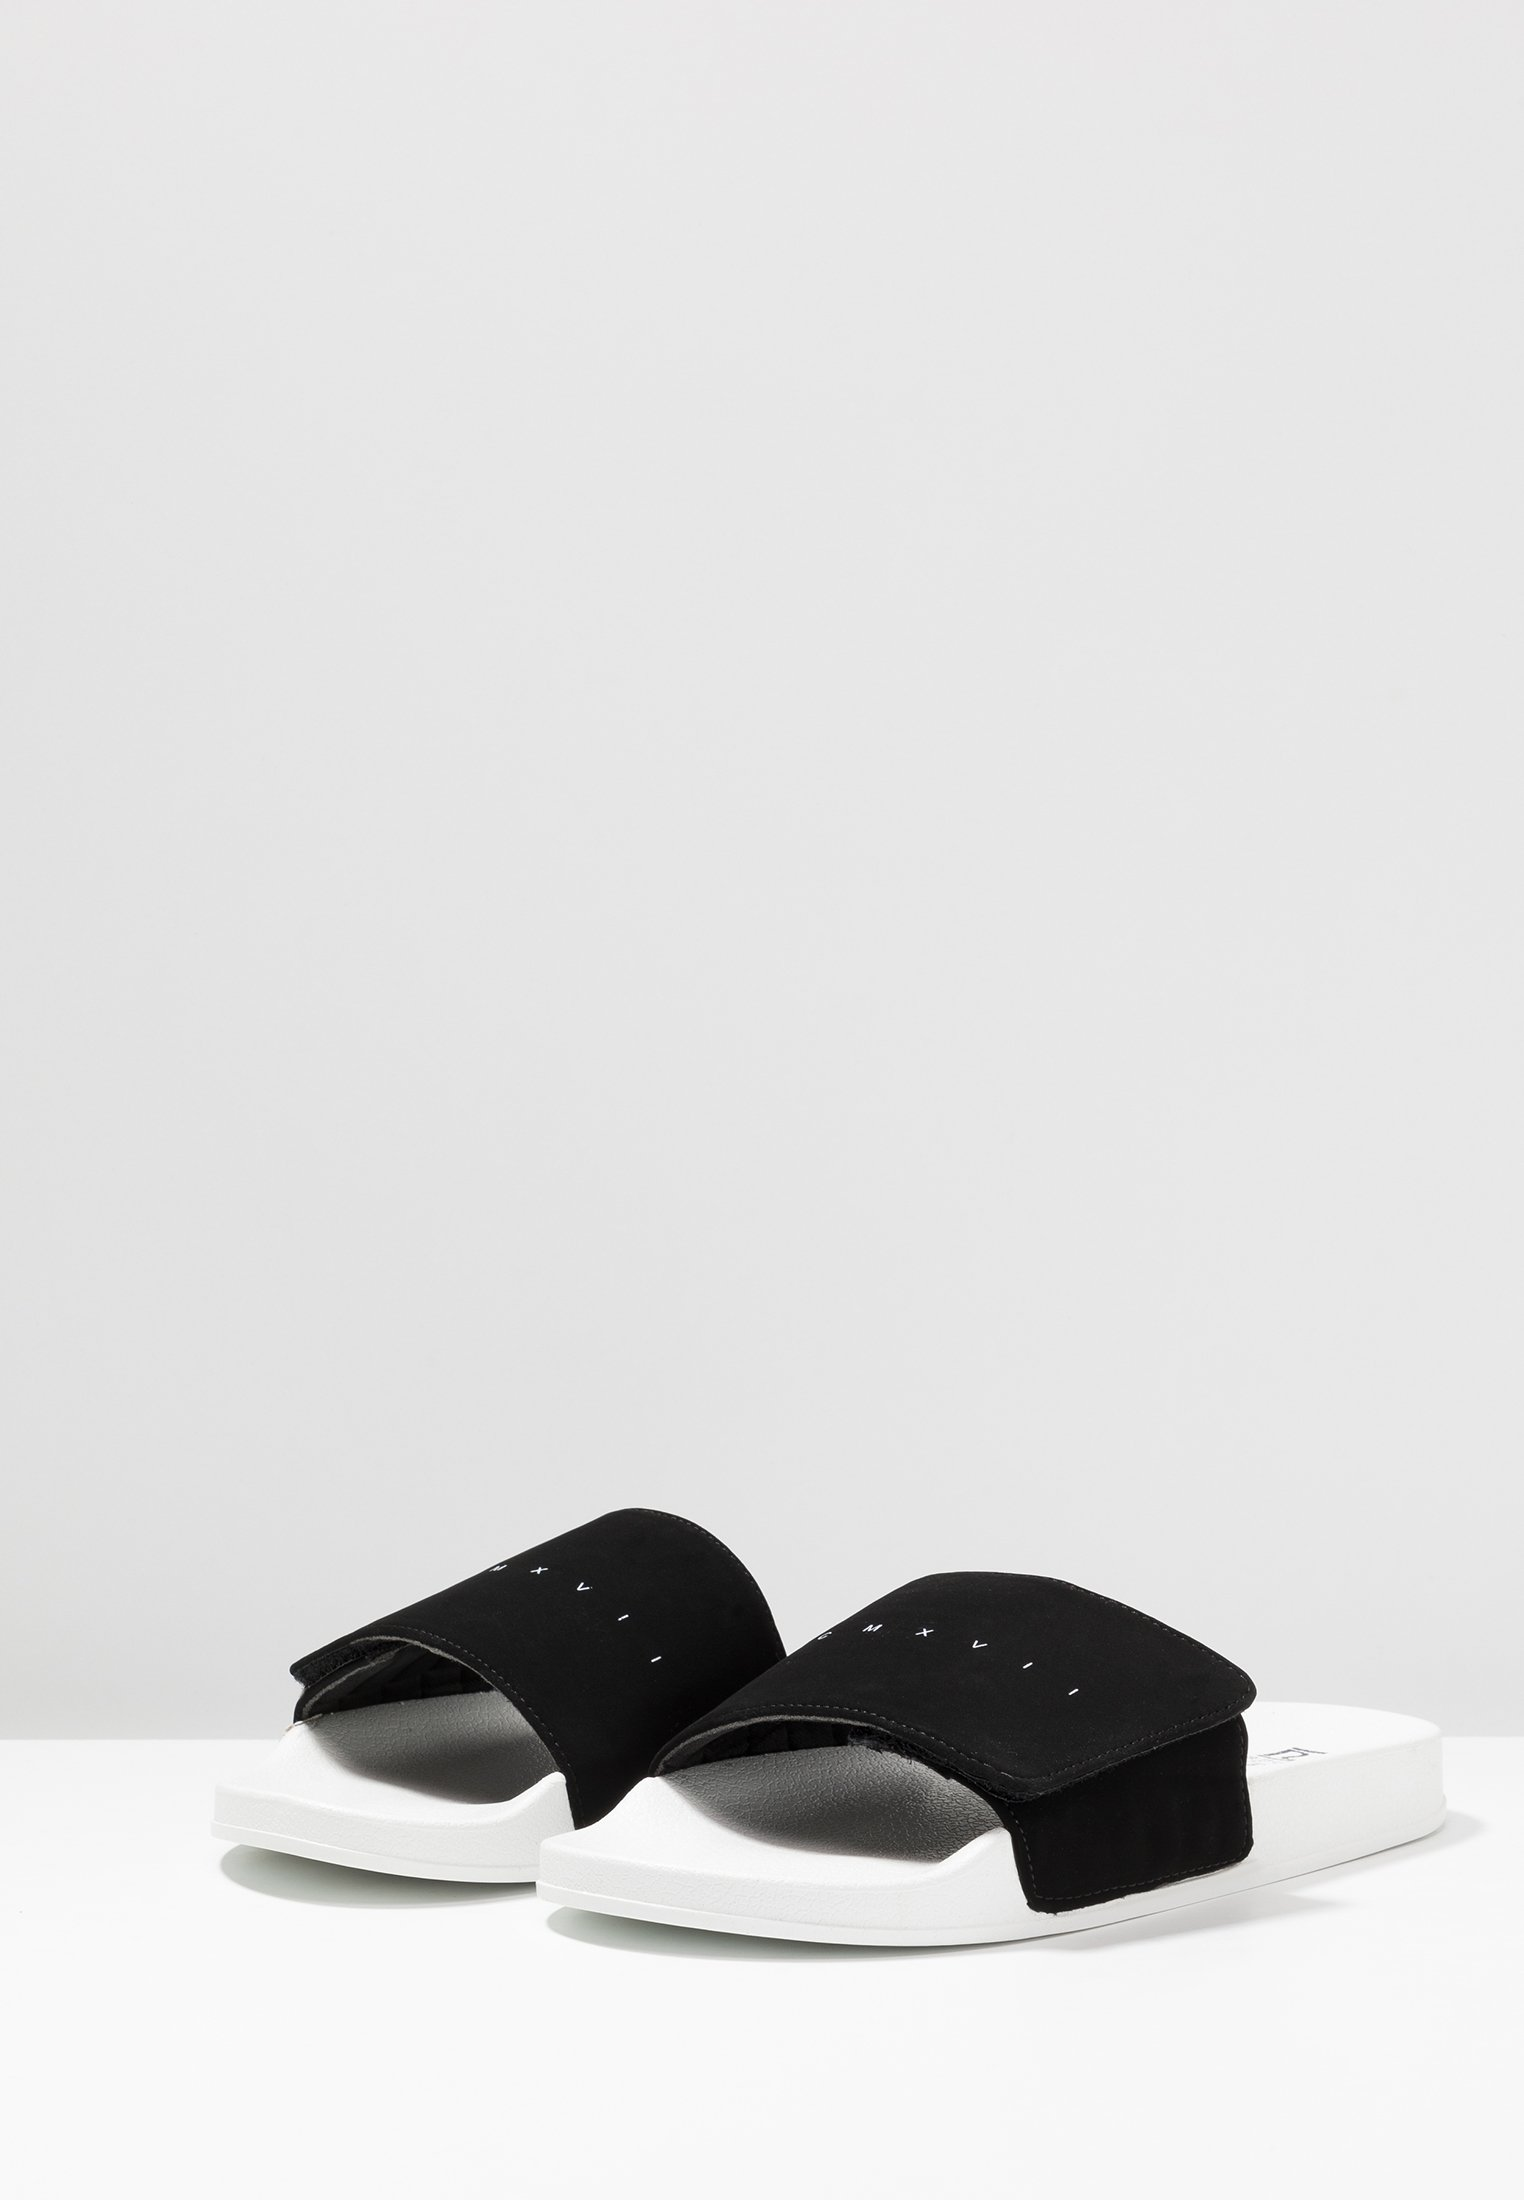 River Island Pantolette Flach - Black Friday